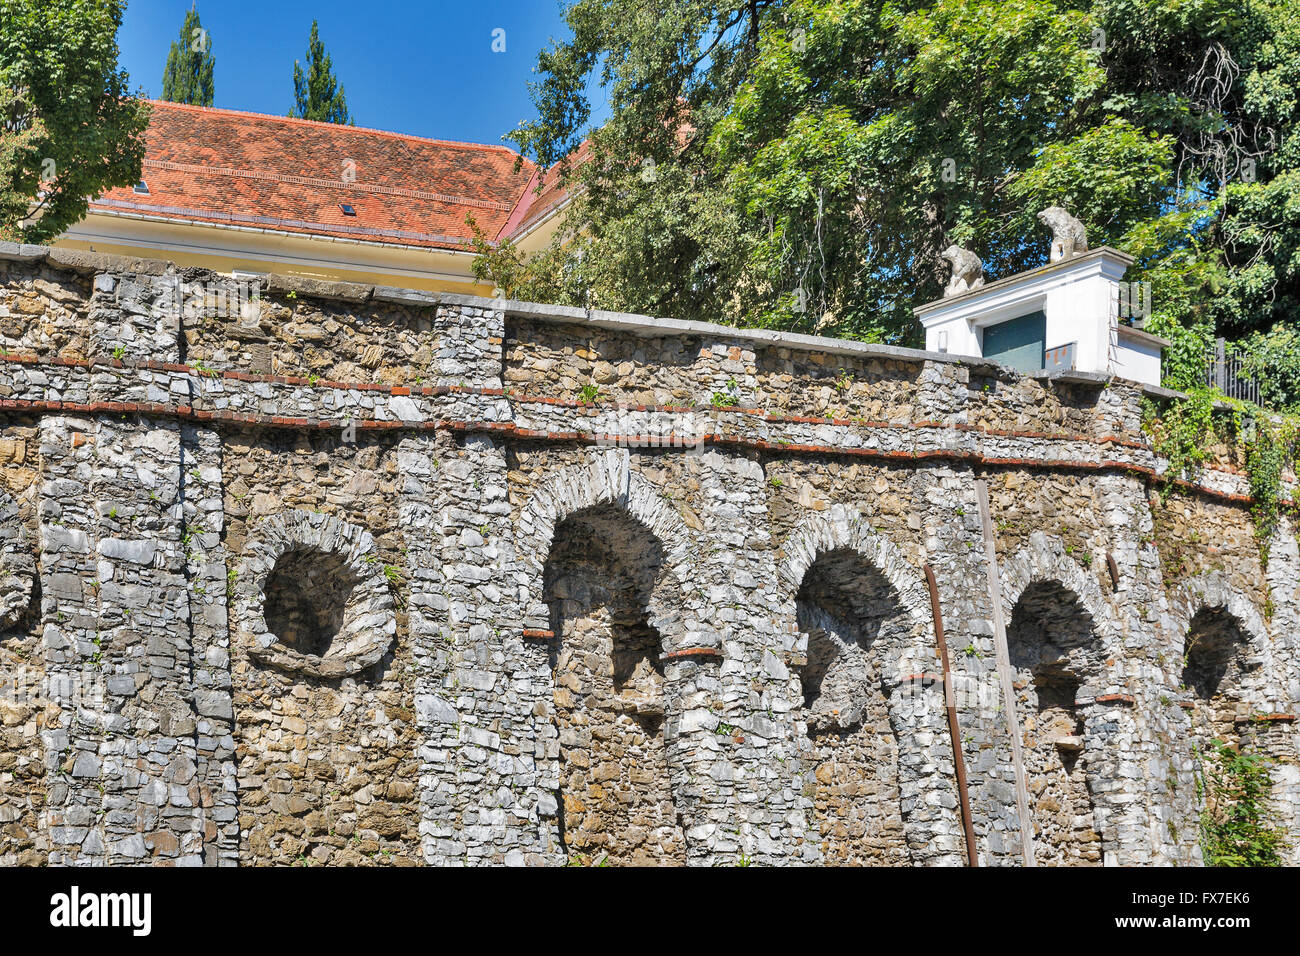 Ancient fortified stone wall close to Volkskunde museum in Graz, Austria - Stock Image